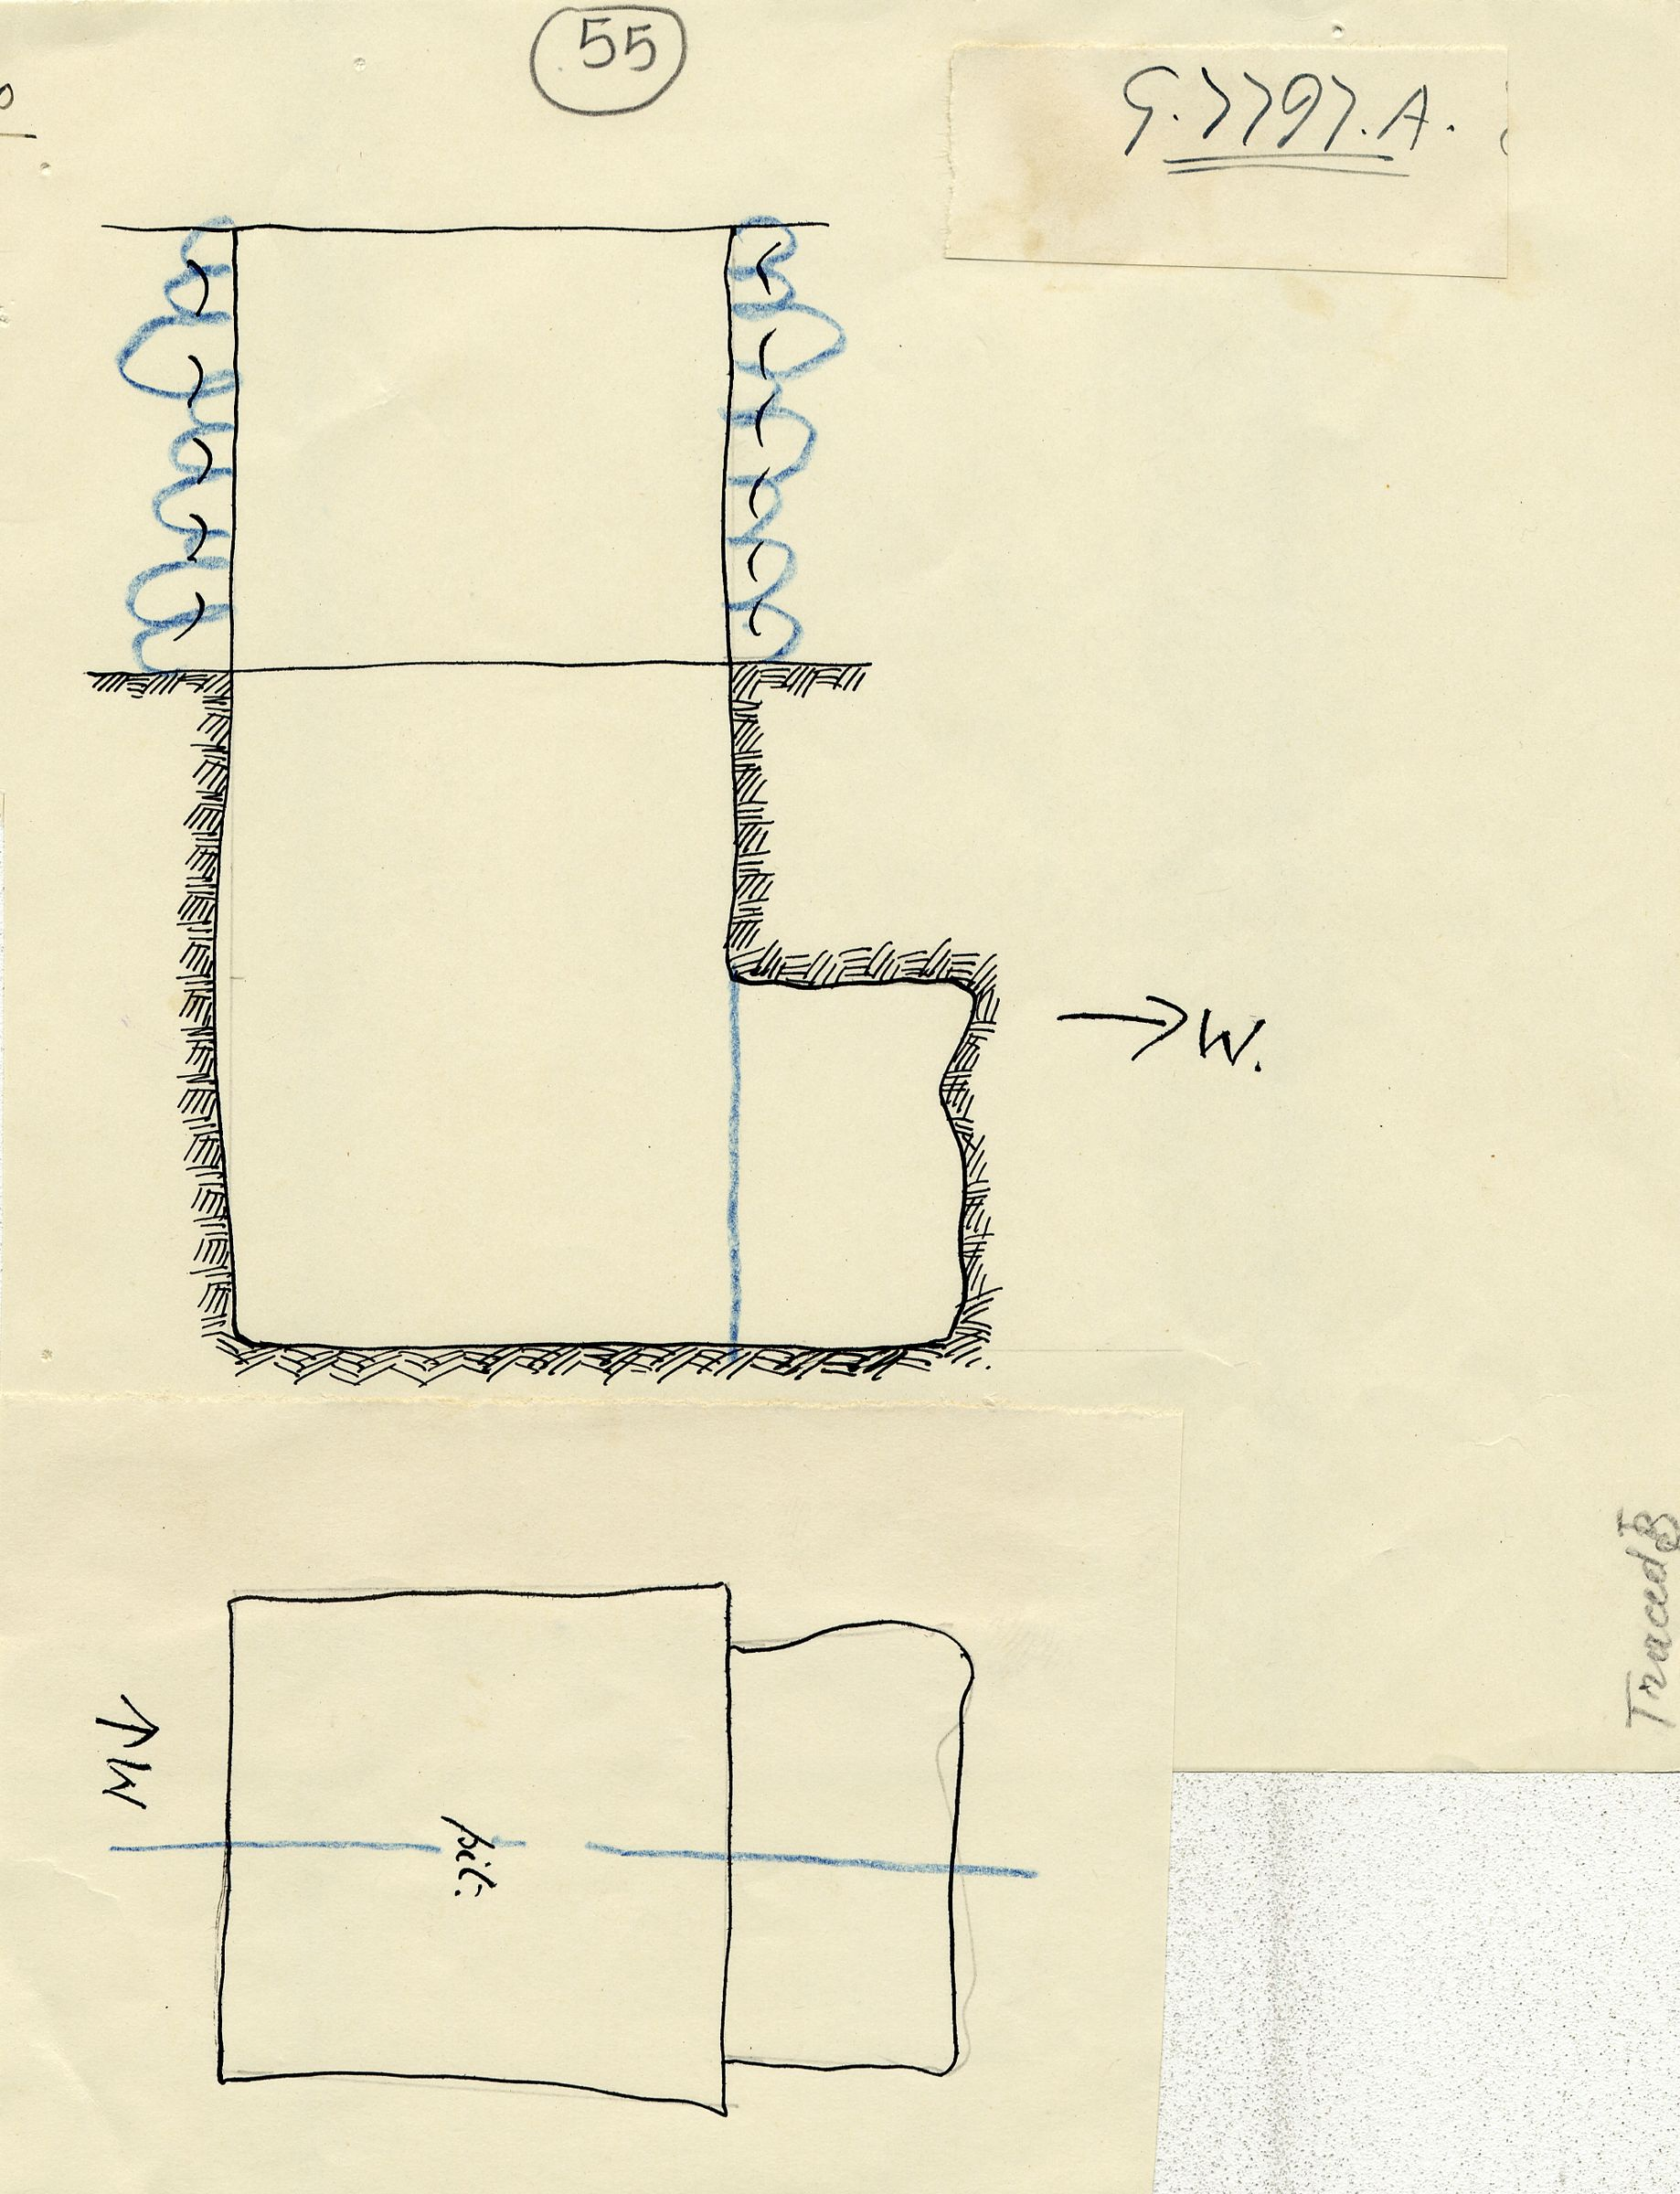 Maps and plans: G 7797a, Shaft A